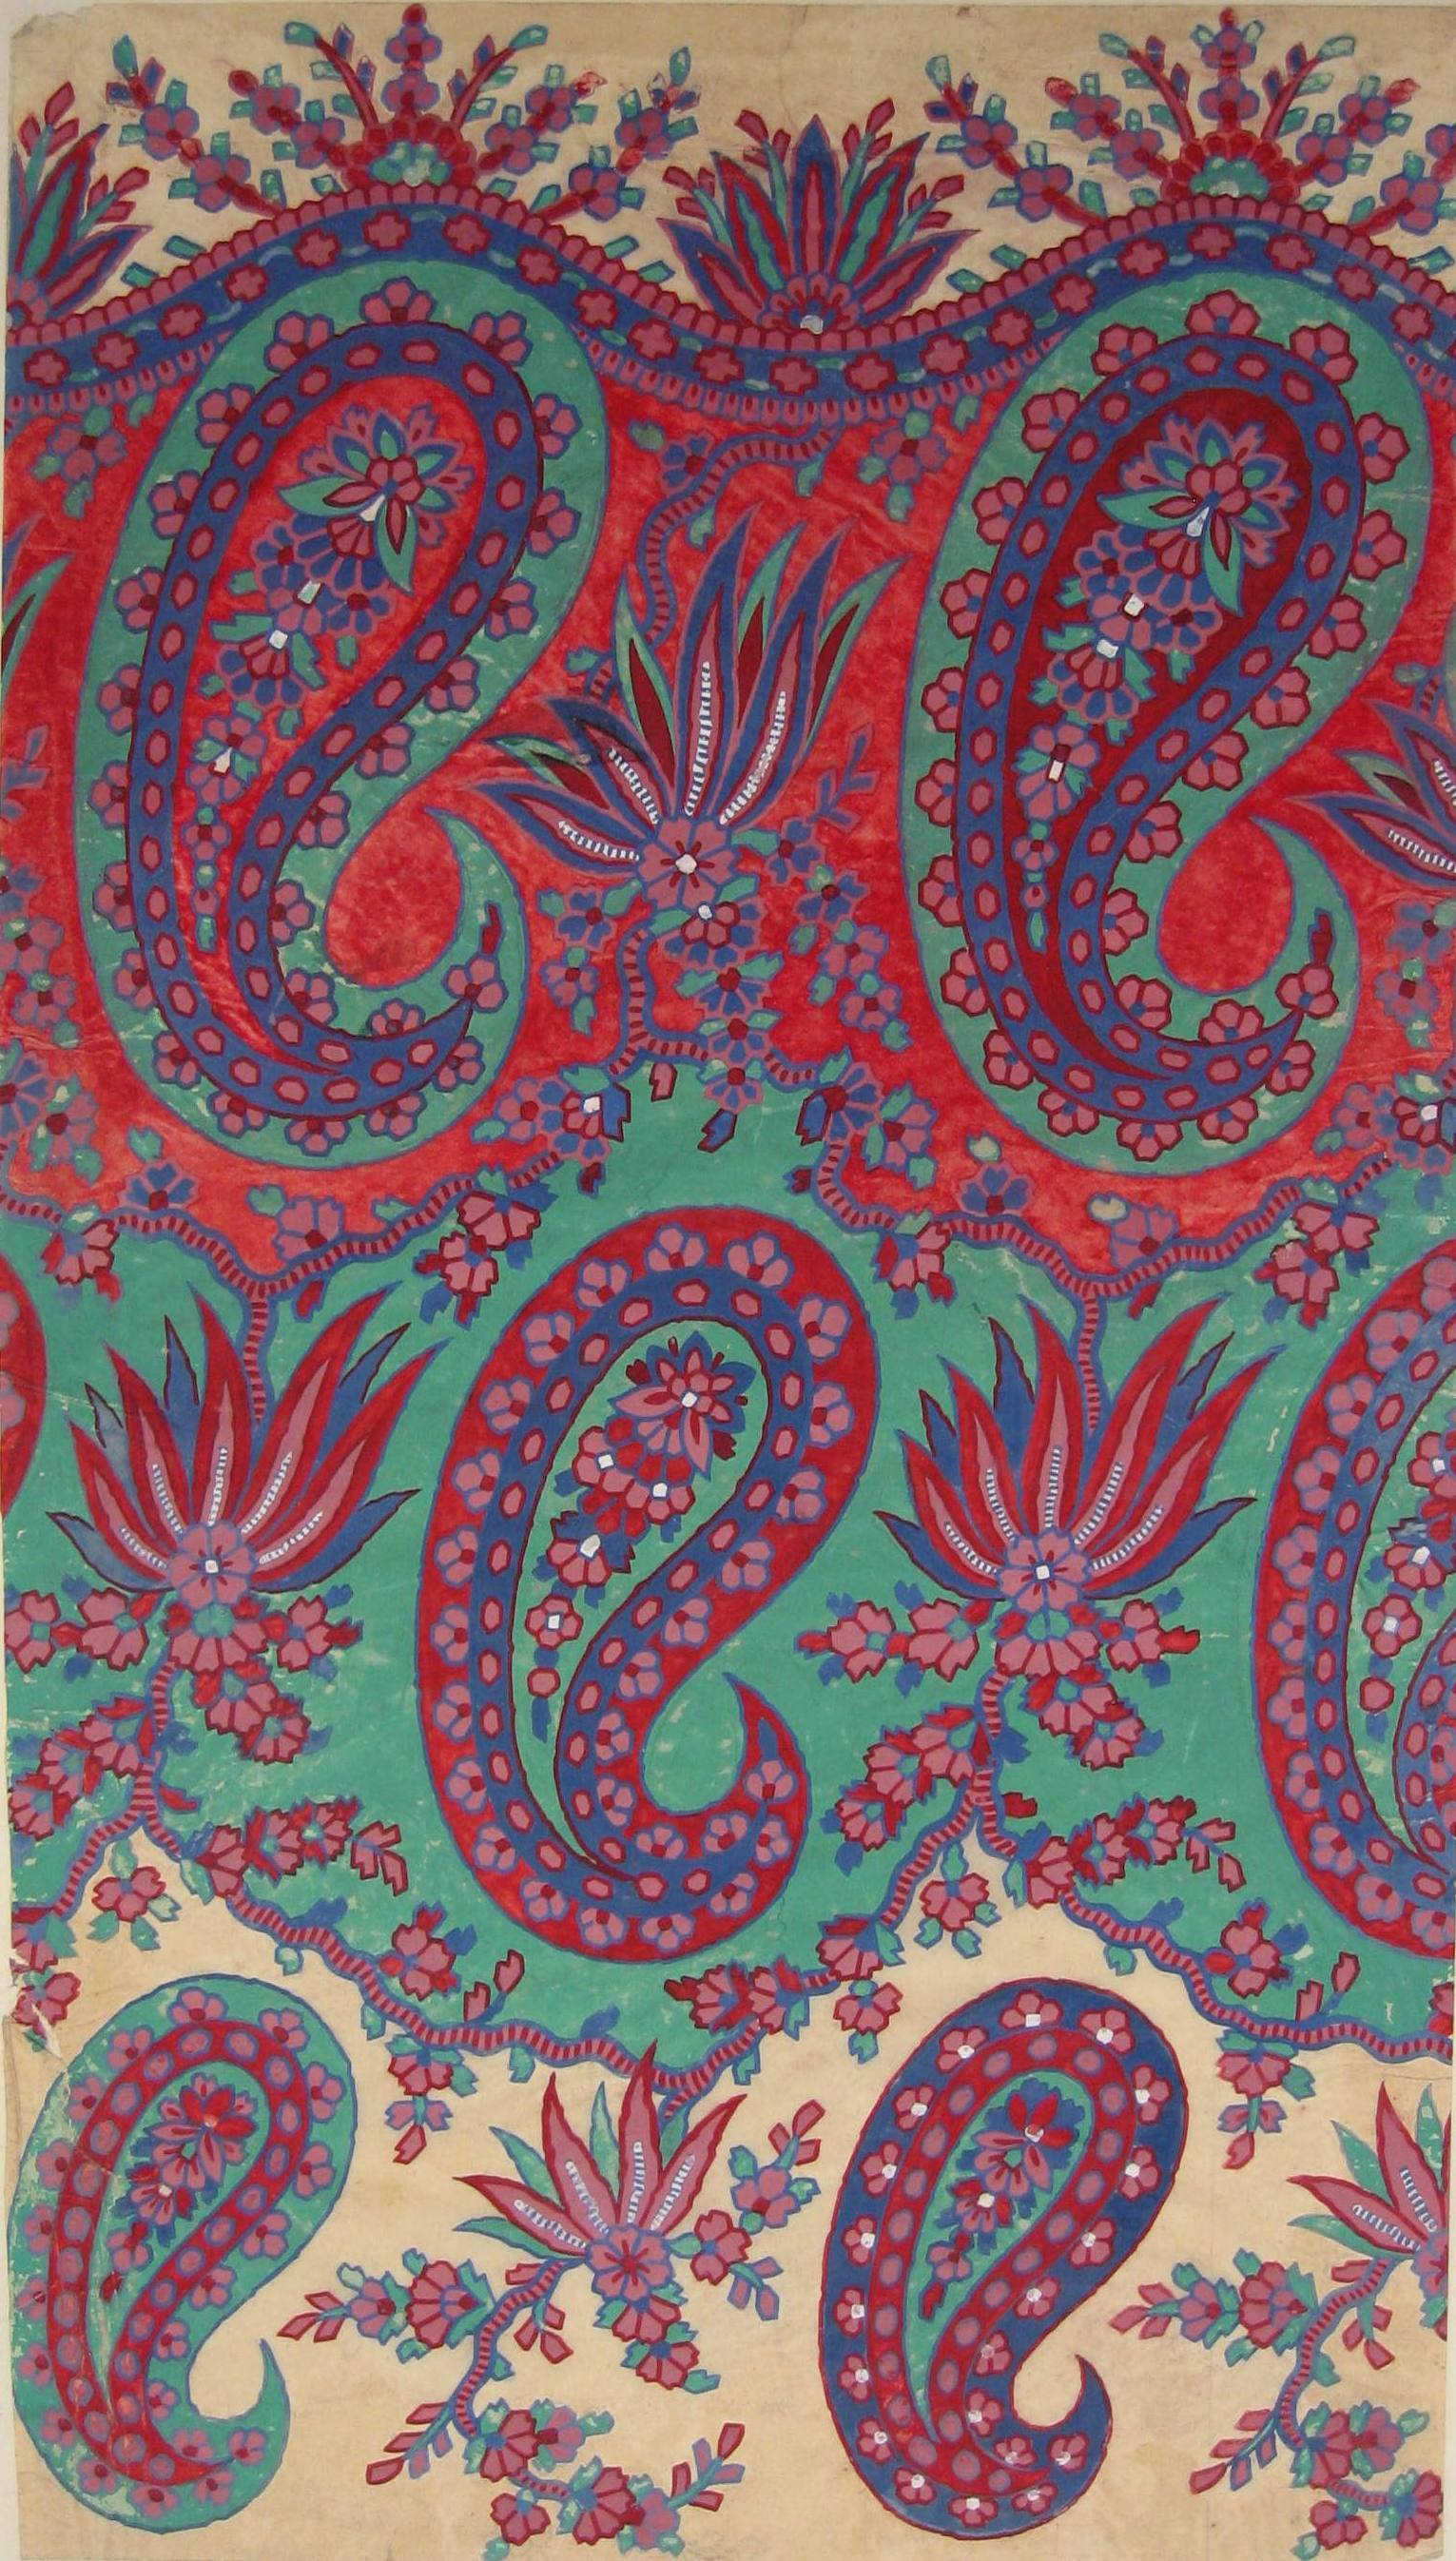 Paisley shawl designs - GSA Archives & Collections - GSA